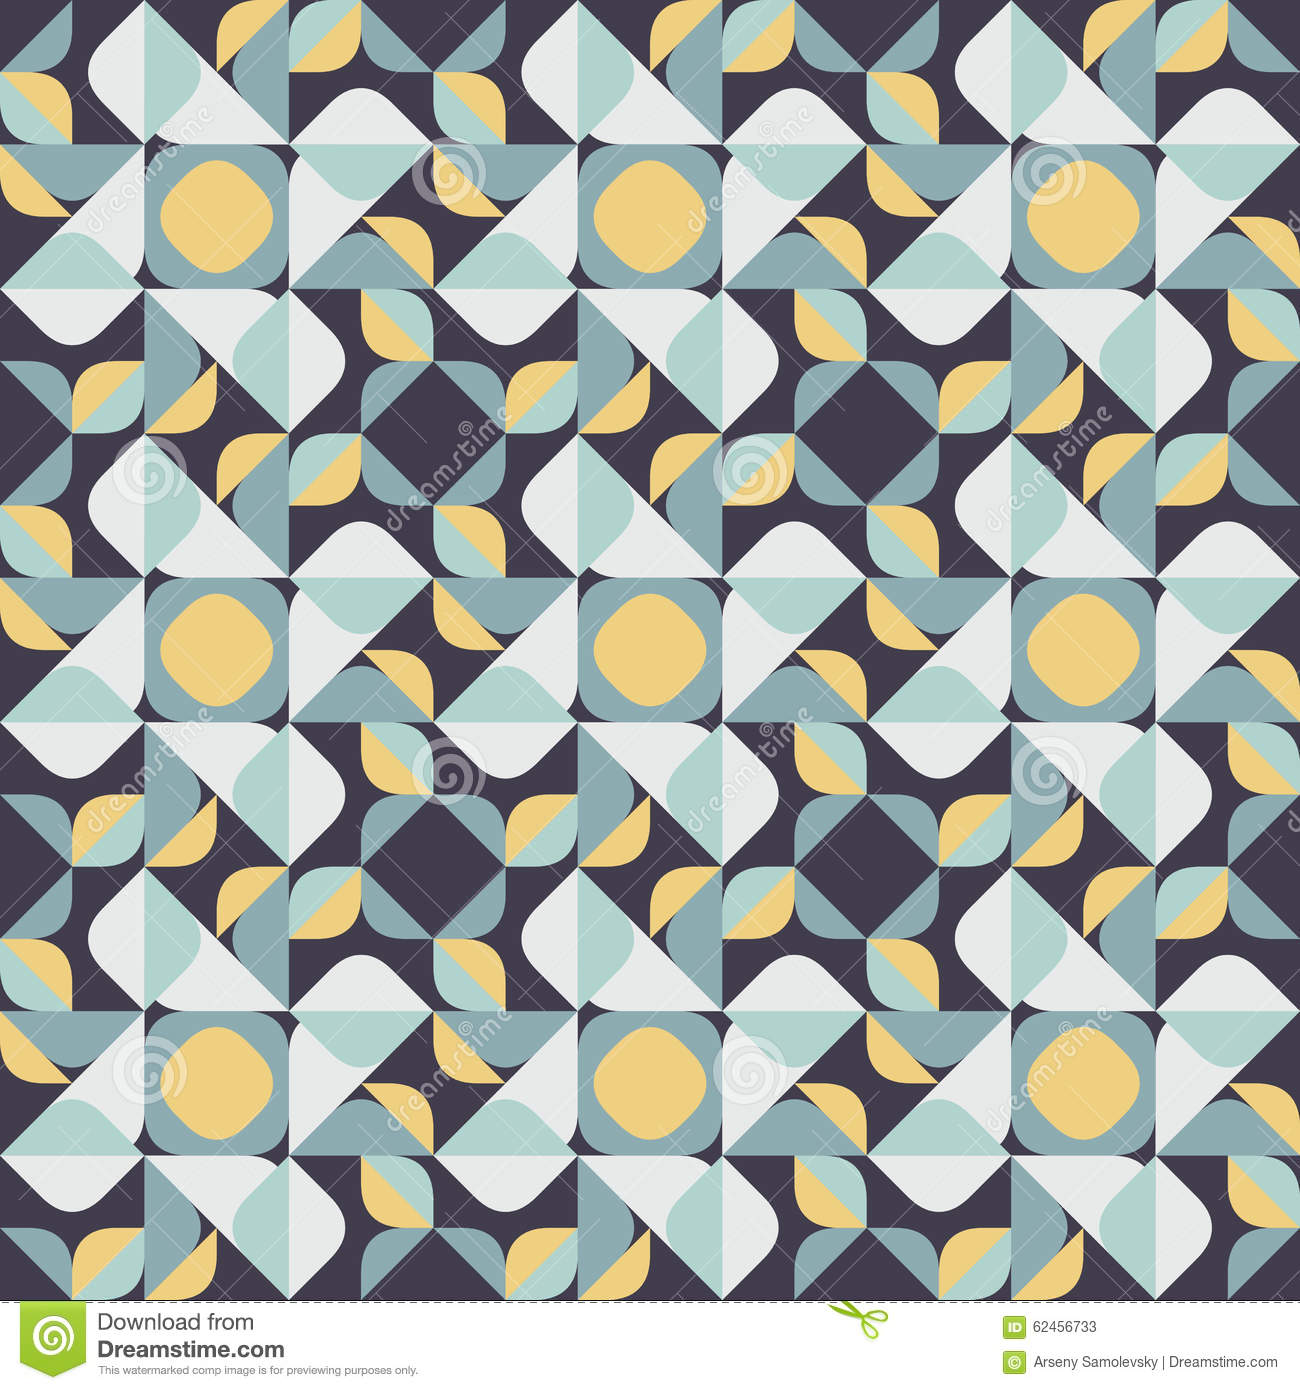 Vector Seamless Geometric Square Triangle Circle Shapes